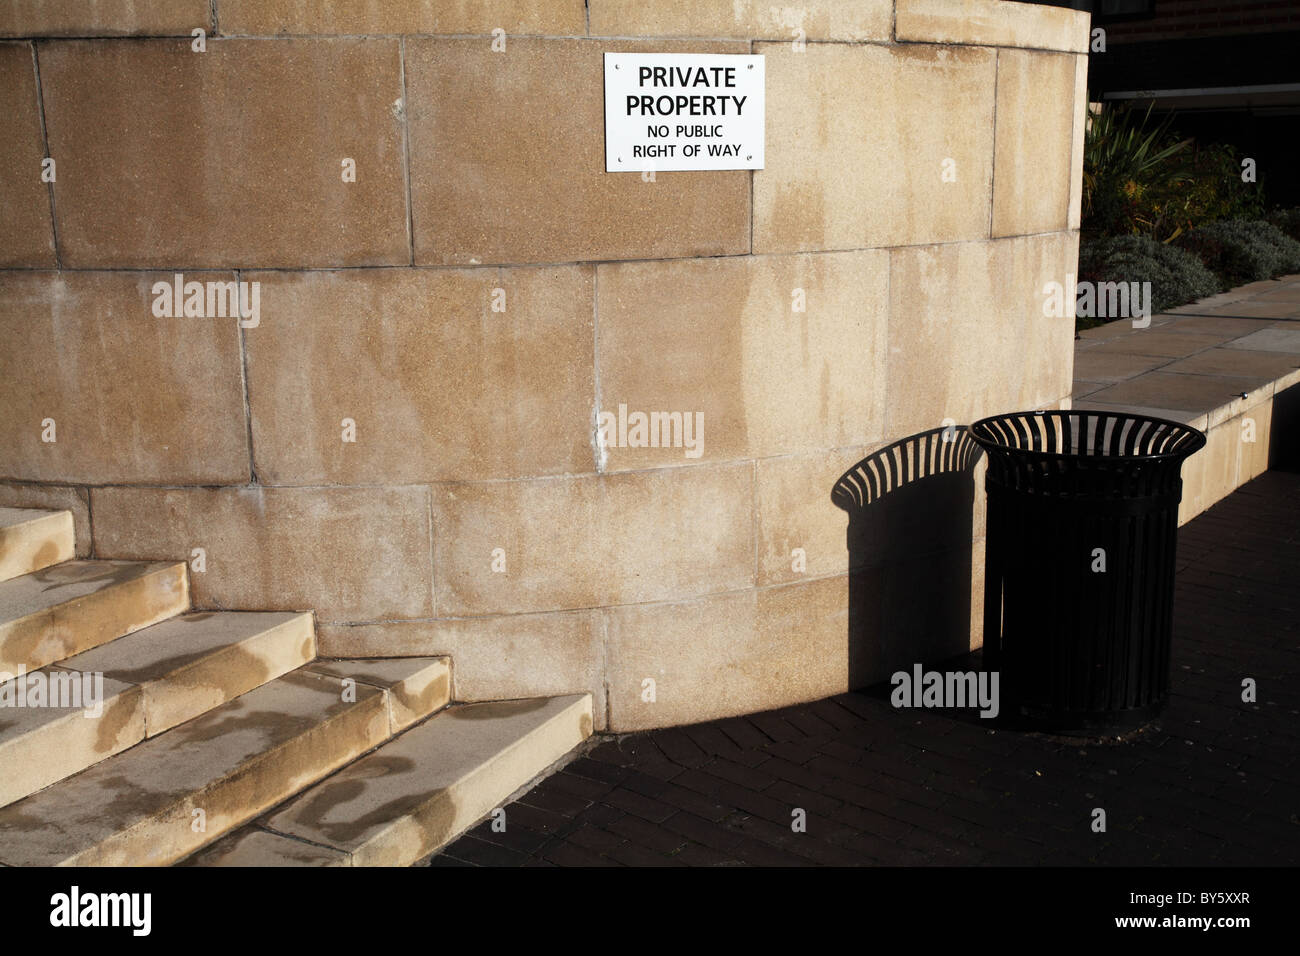 Private property sign in the Docklands, London - Stock Image